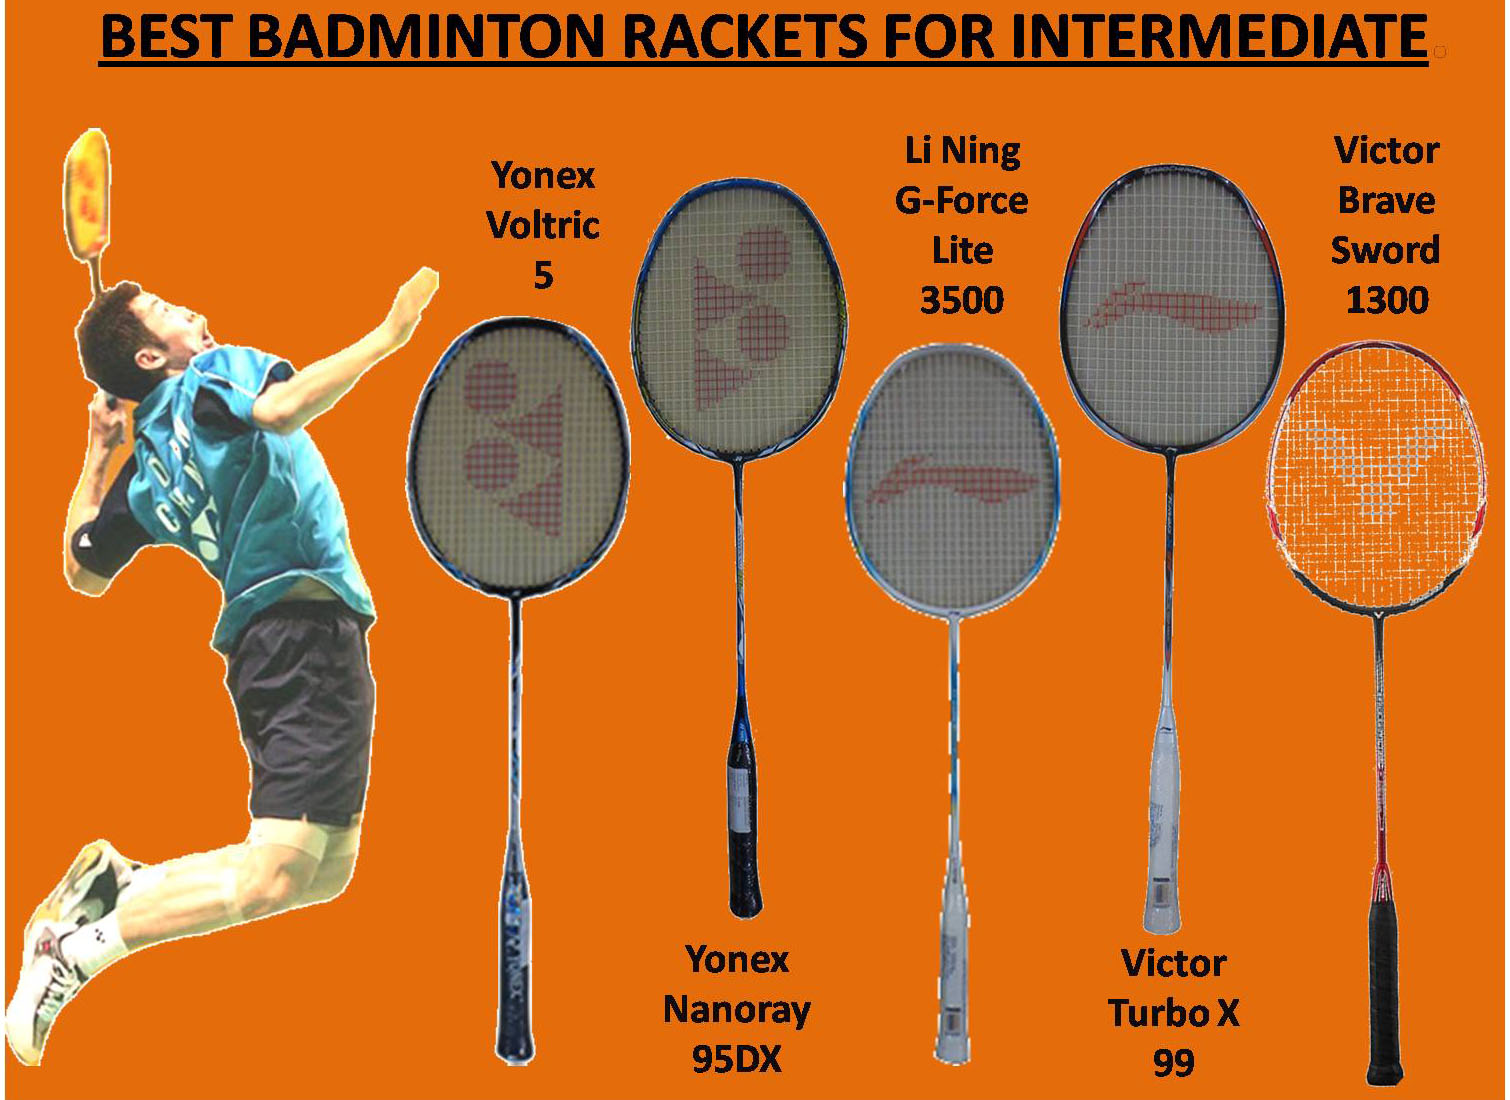 BEST BADMINTON RACKET FOR INTERMEDIATE